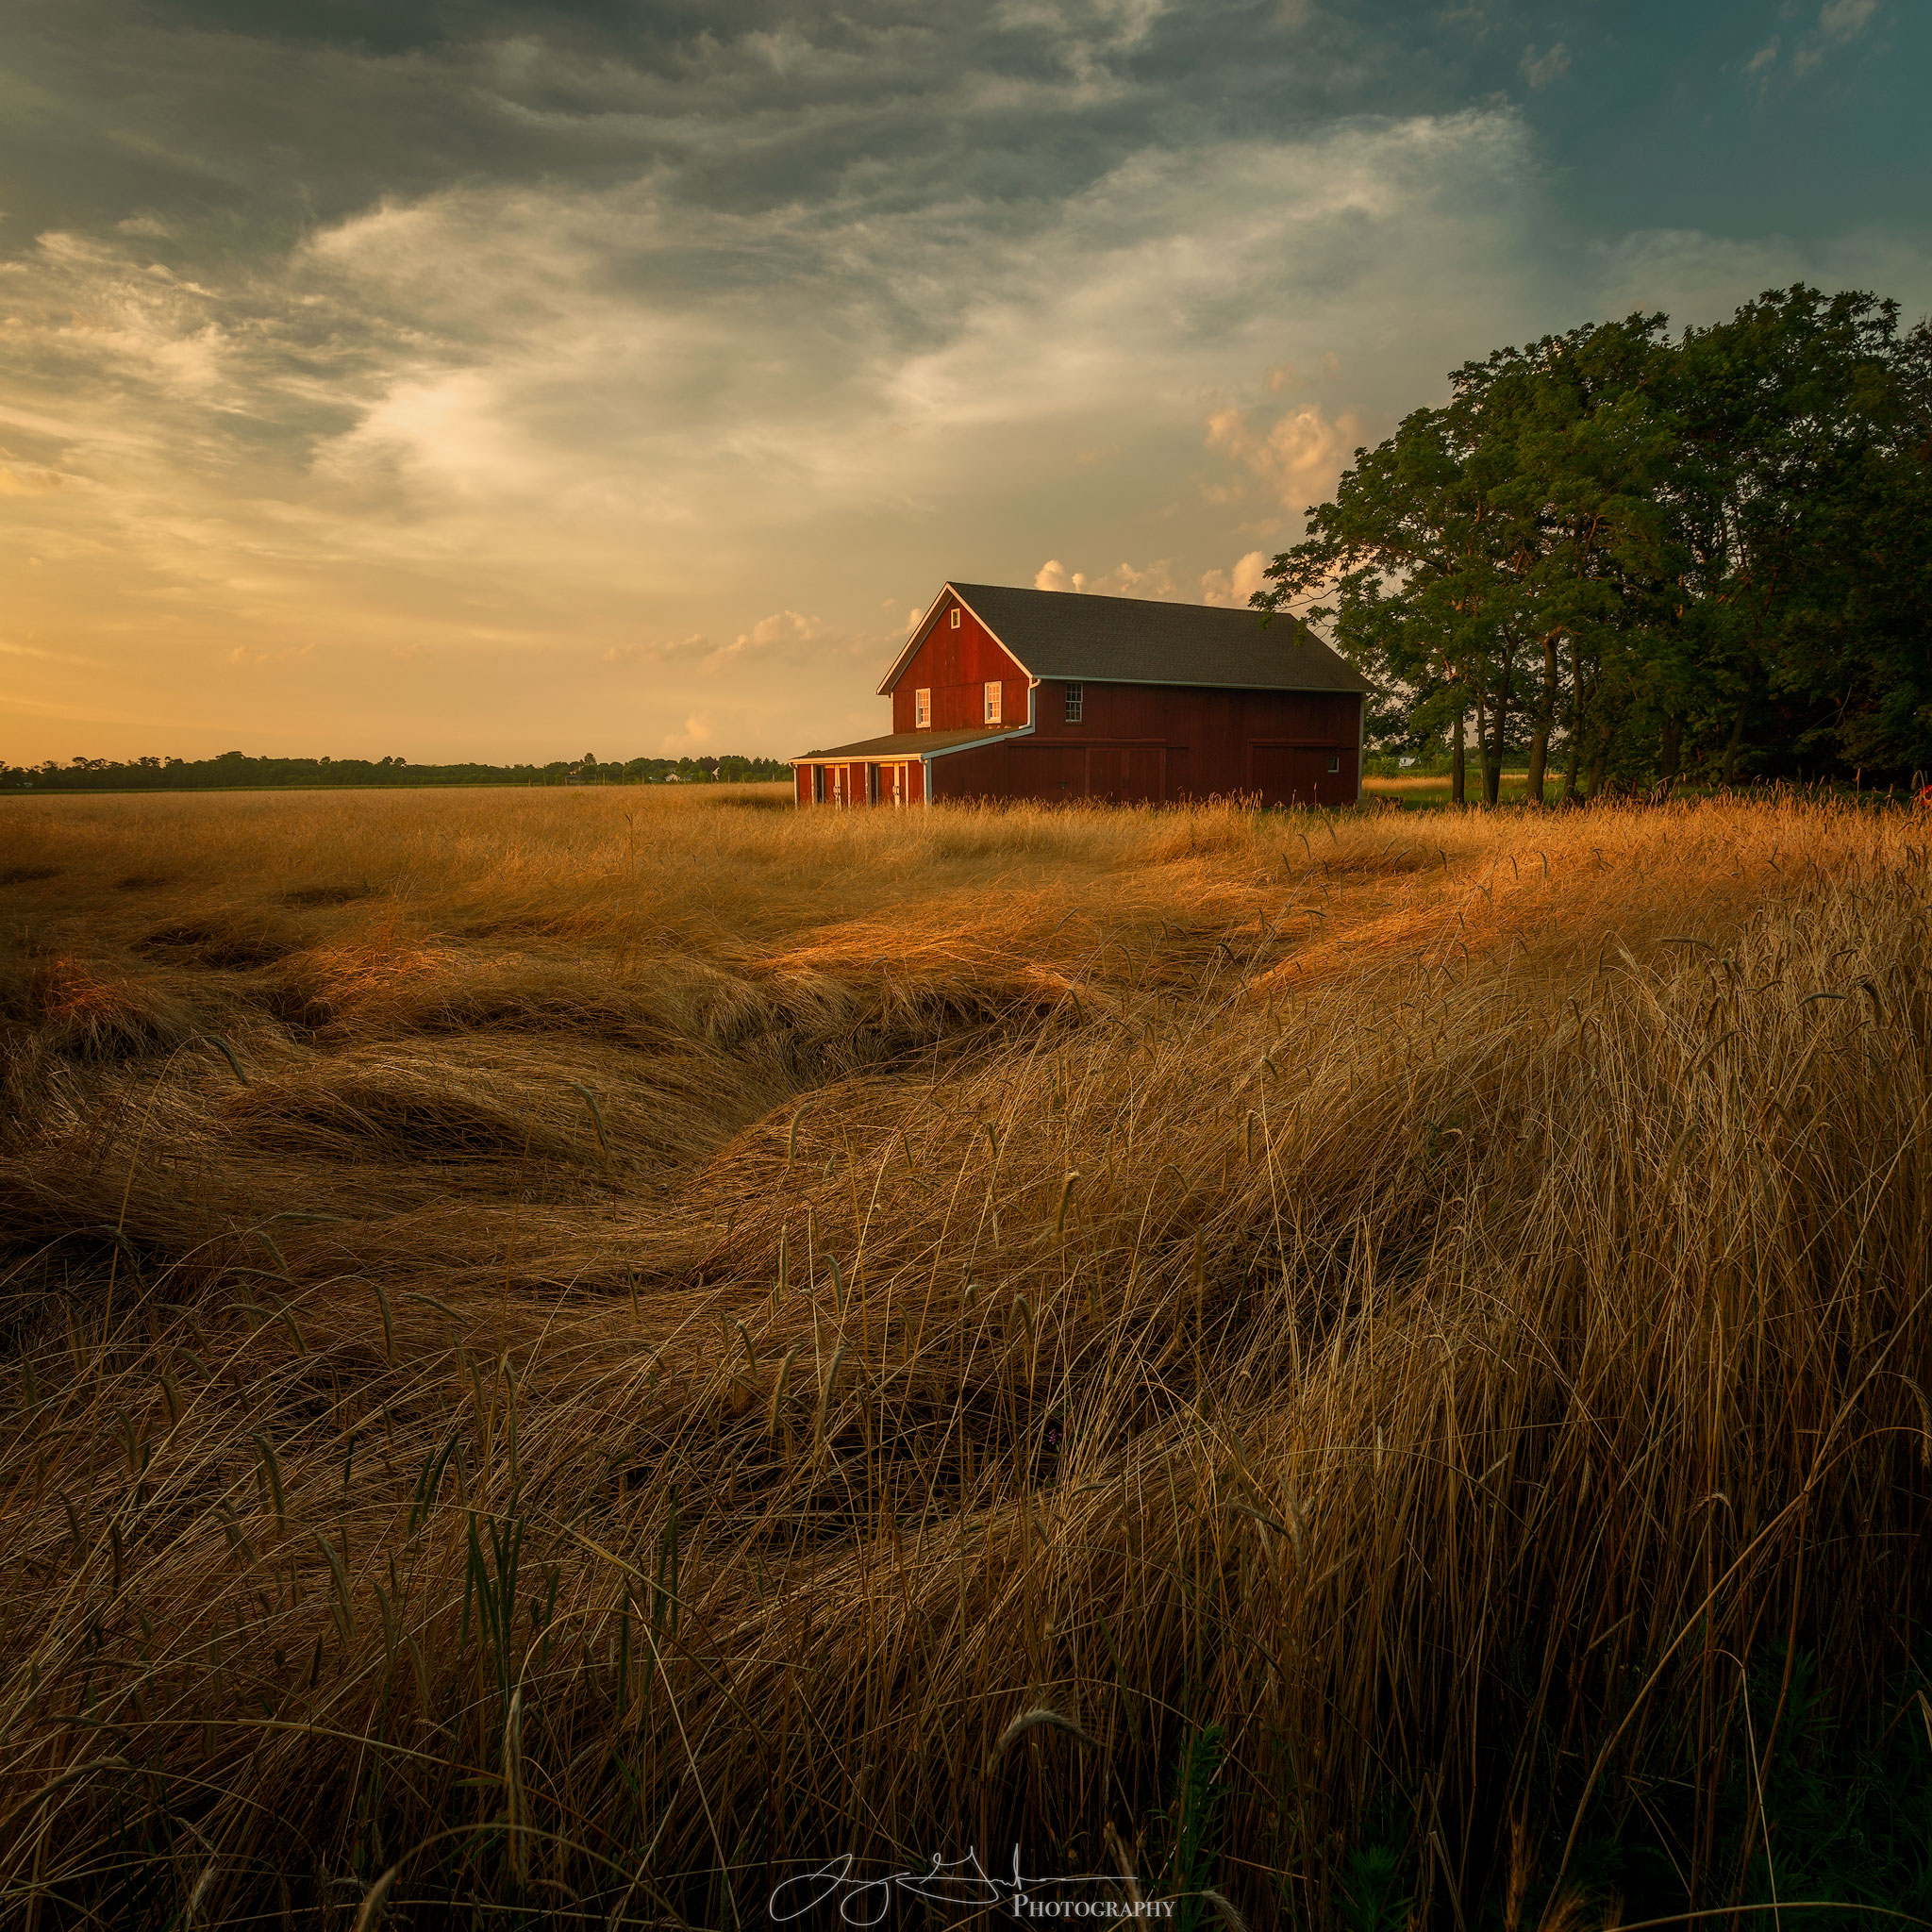 Golden-Barn-#2-copy.jpg